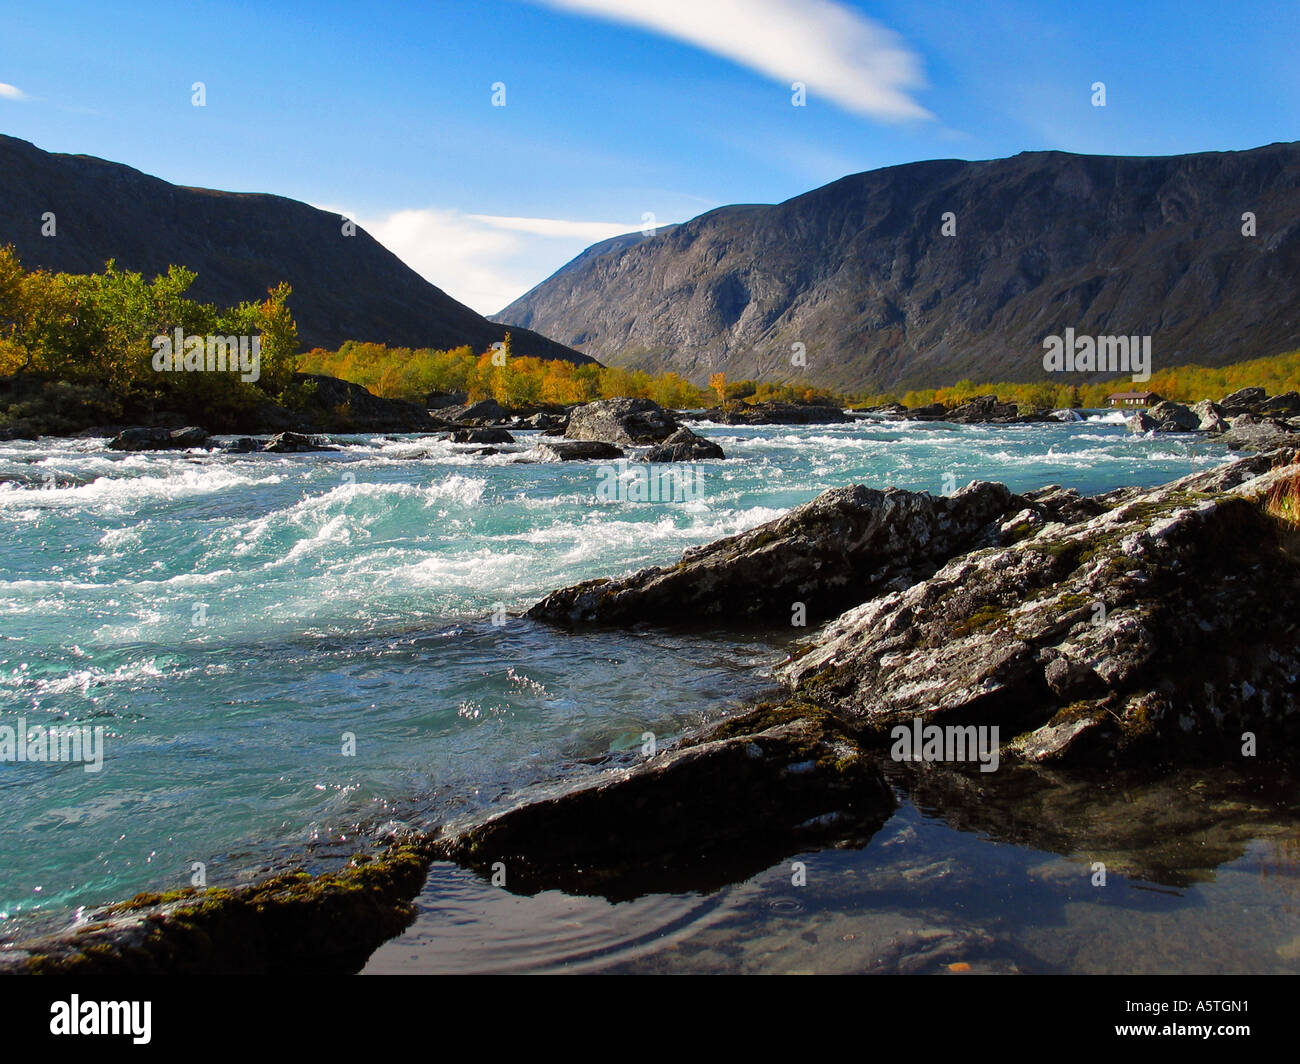 Wild river running through green valley during Indian summer Jotunheimen Norway - Stock Image